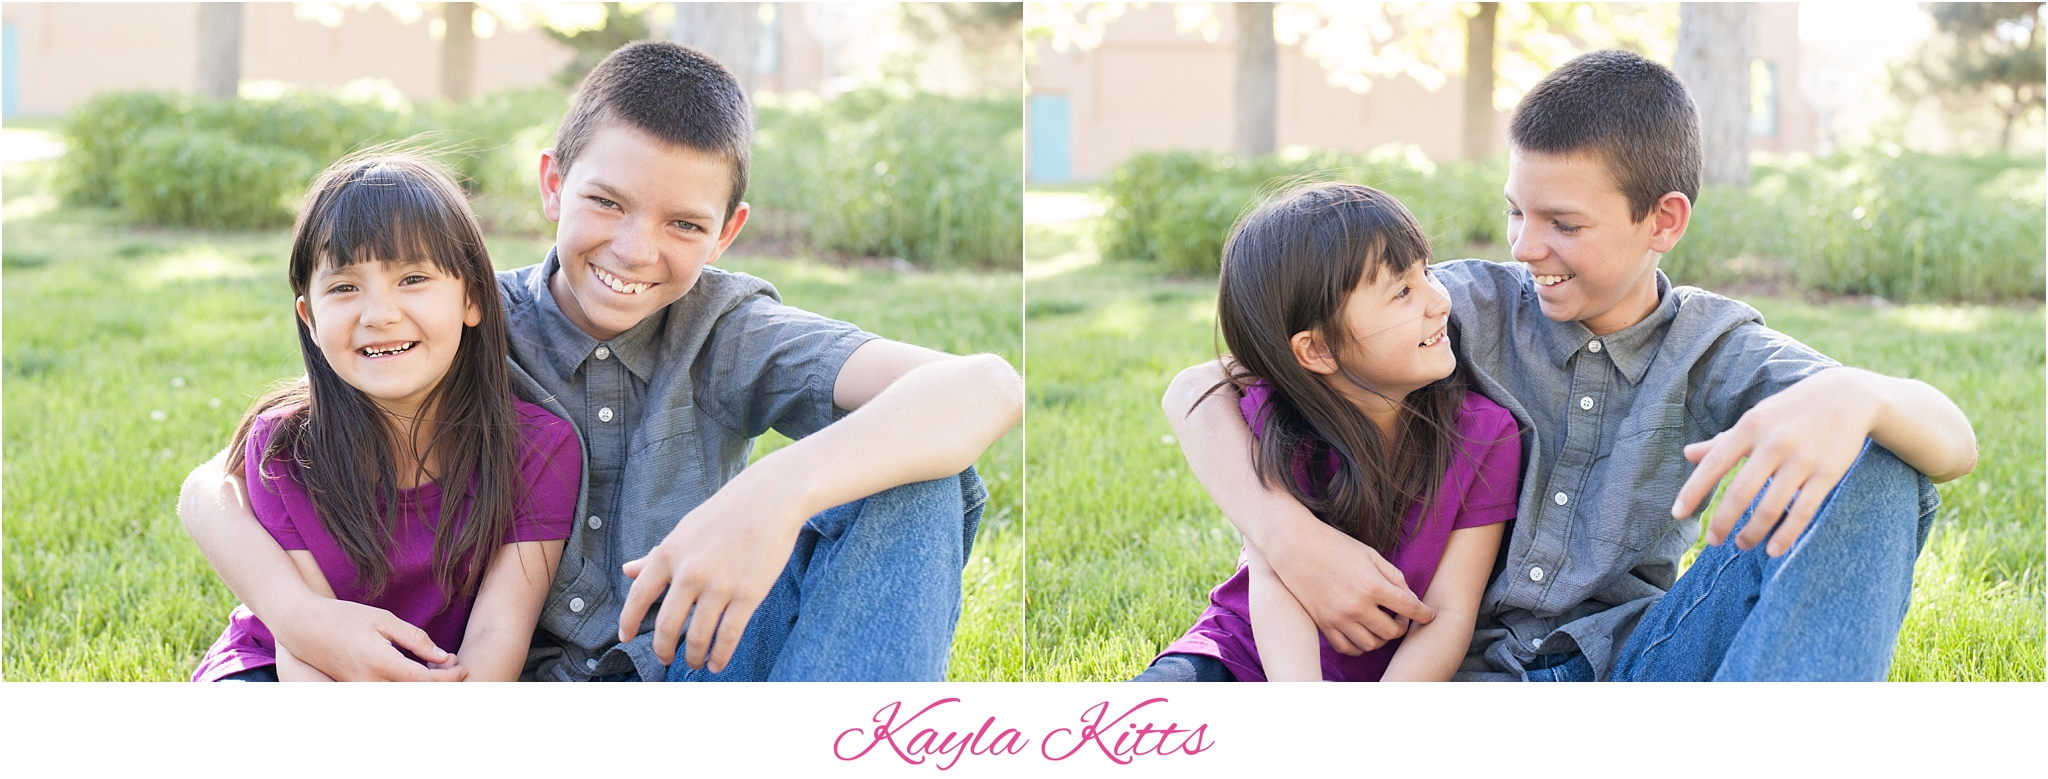 kayla kitts photography - albuquerque wedding photographer - albuquerque engagement photographer - nm wedding - albuquerque wedding - nm wedding - unm engagement - bosque engagement session_0004.jpg